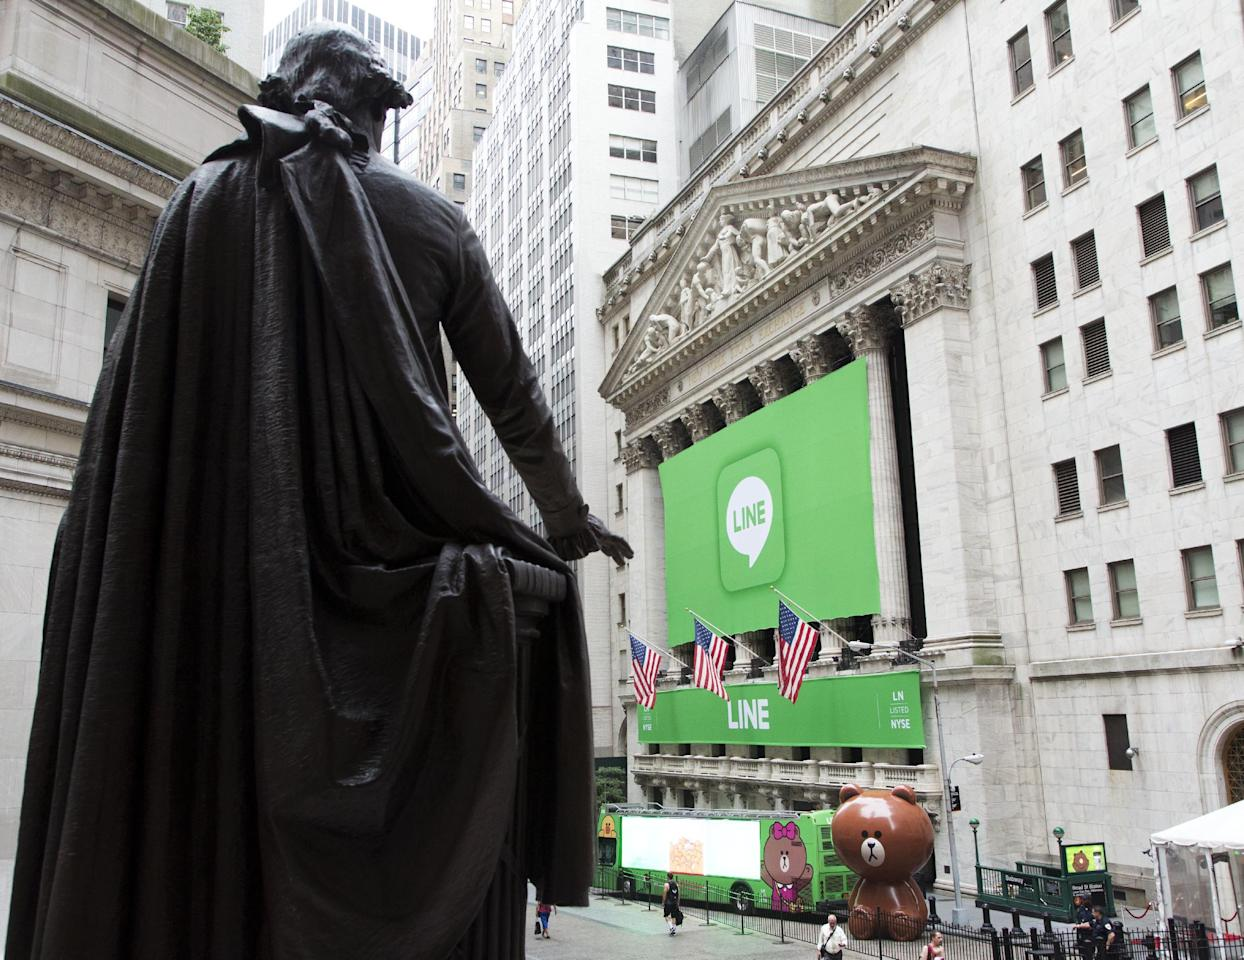 A statue of George Washington overlooks the New York Stock Exchange, Thursday, July 14, 2016, in New York. Japanese messaging app Line has its IPO Thursday at the exchange. Though little known in the U.S., Line has enjoyed a quick surge to popularity in Japan, filling an important communications hole after a devastating earthquake and tsunami in 2011 damaged phone infrastructure. In its home country, Line has more users than Facebook or Twitter. (AP Photo/Mark Lennihan)